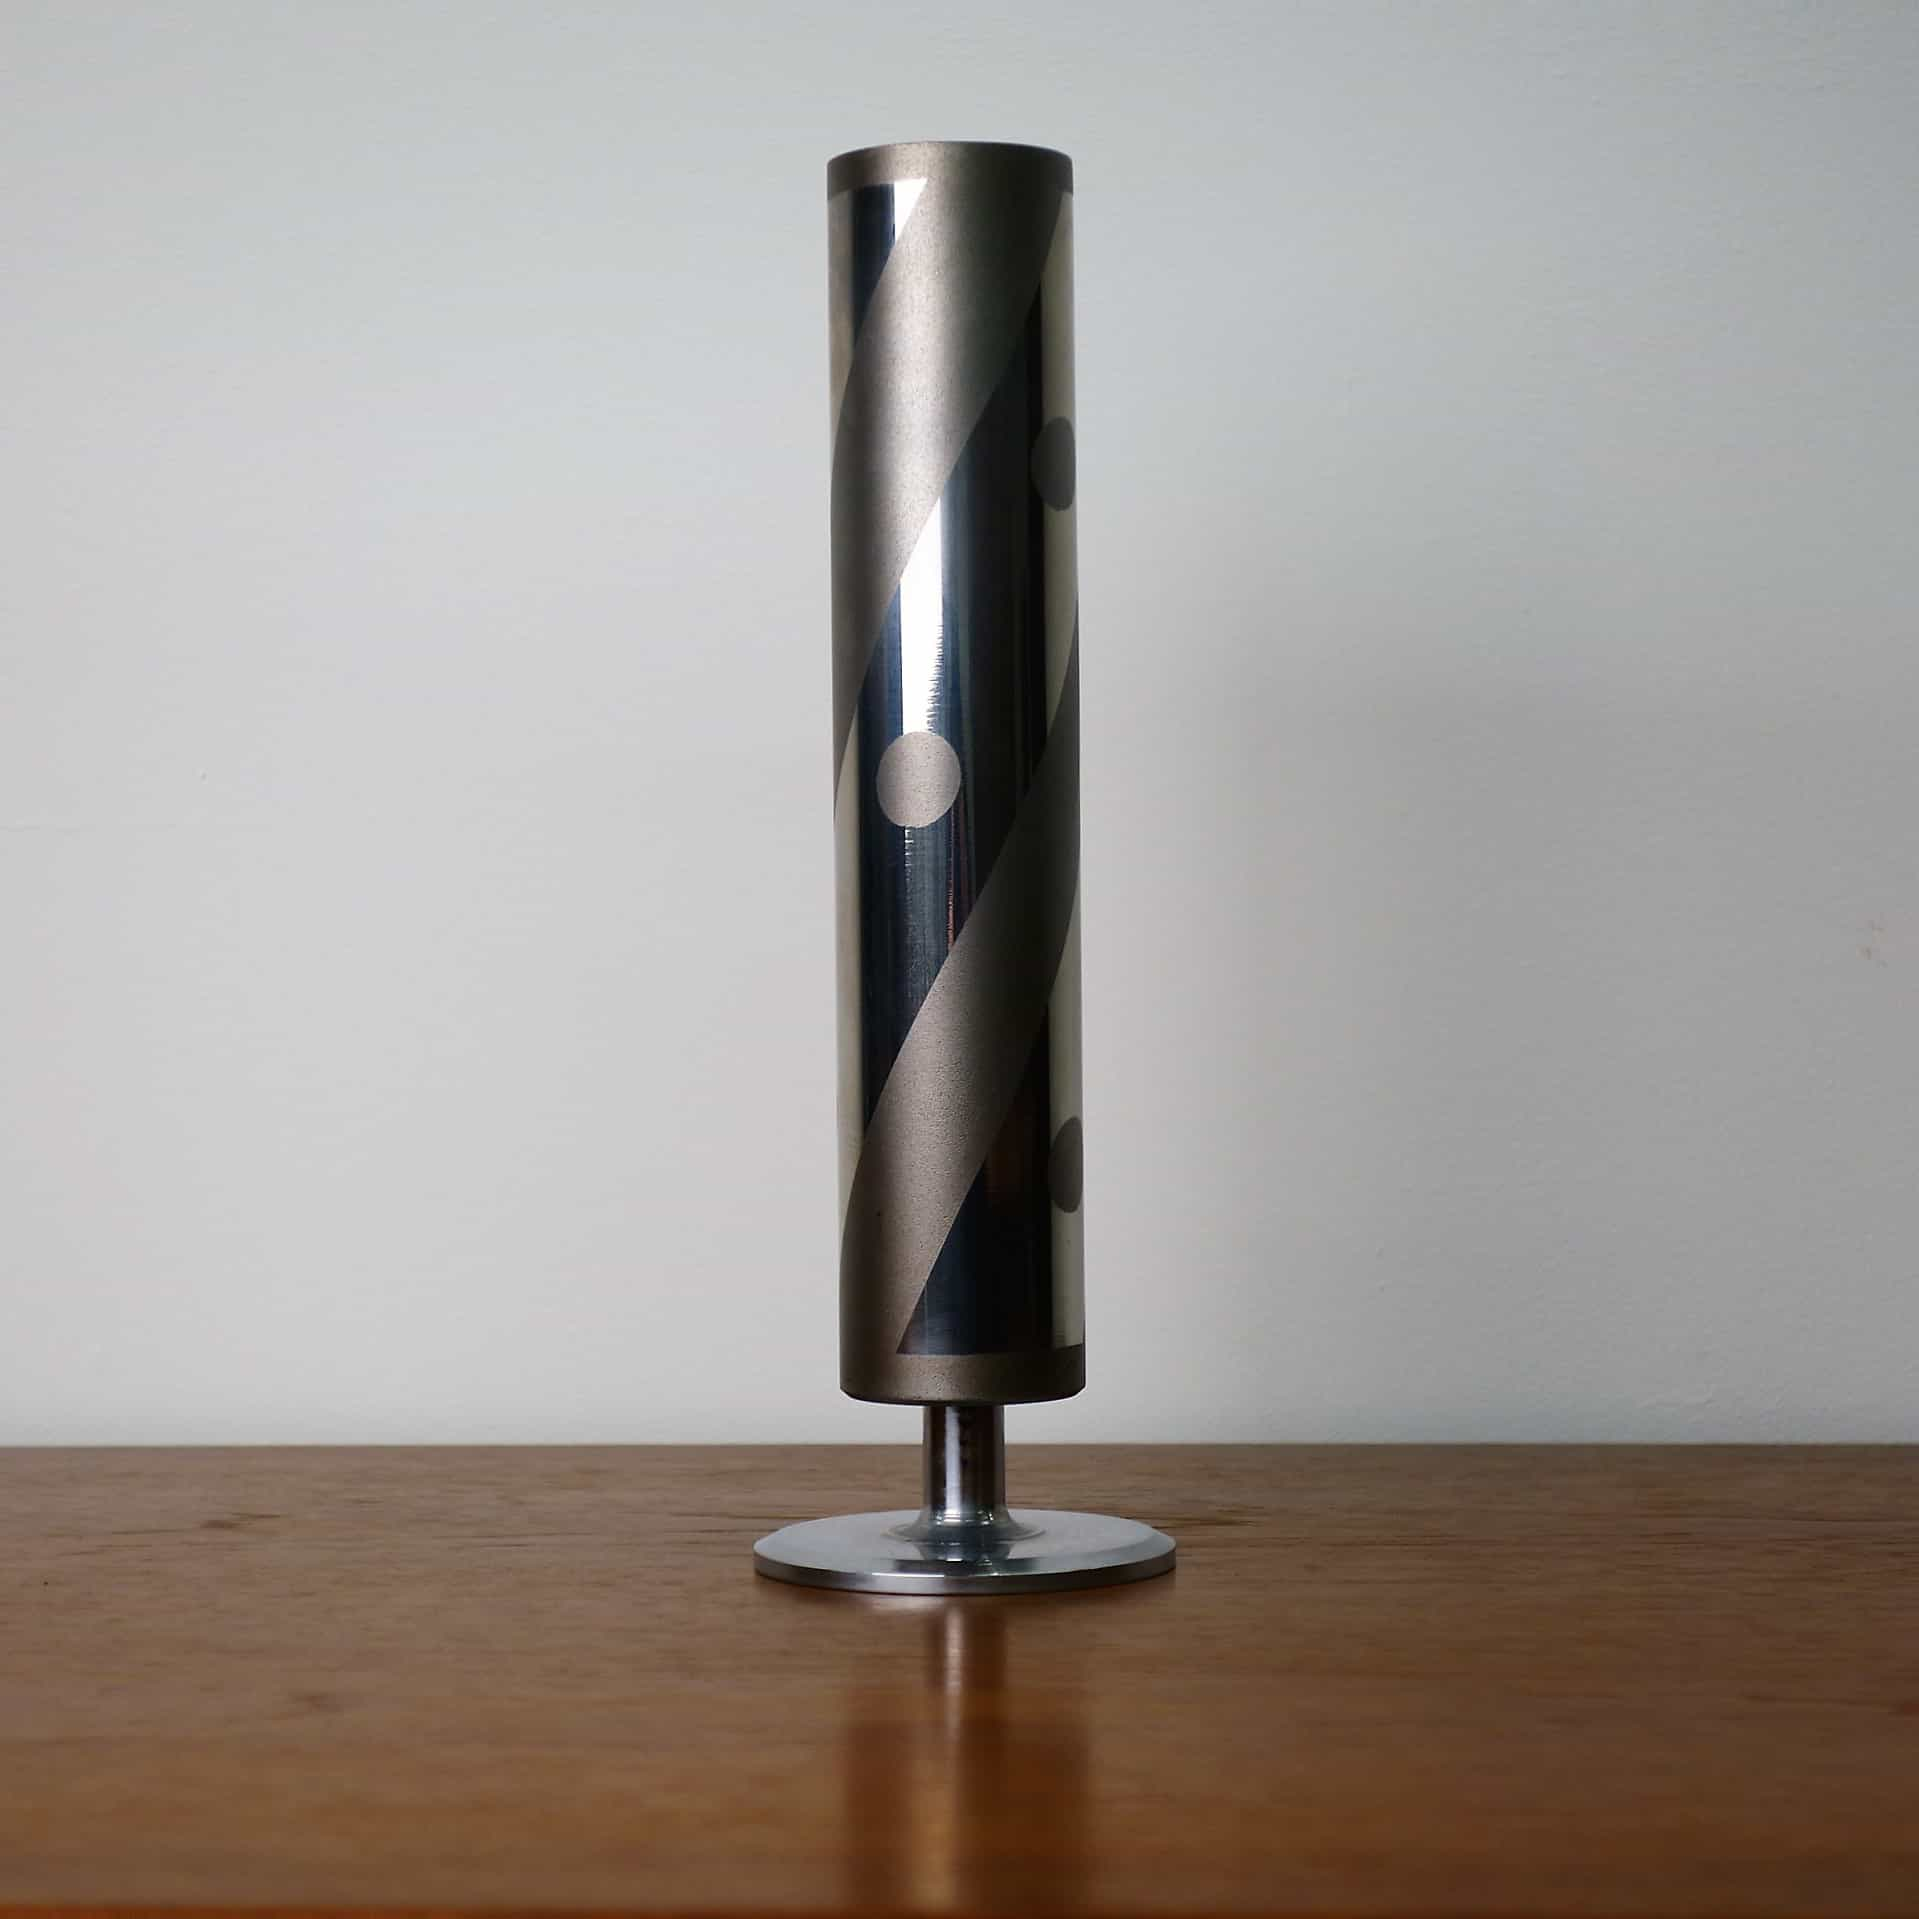 70s chrome plated cylindrical stem vase